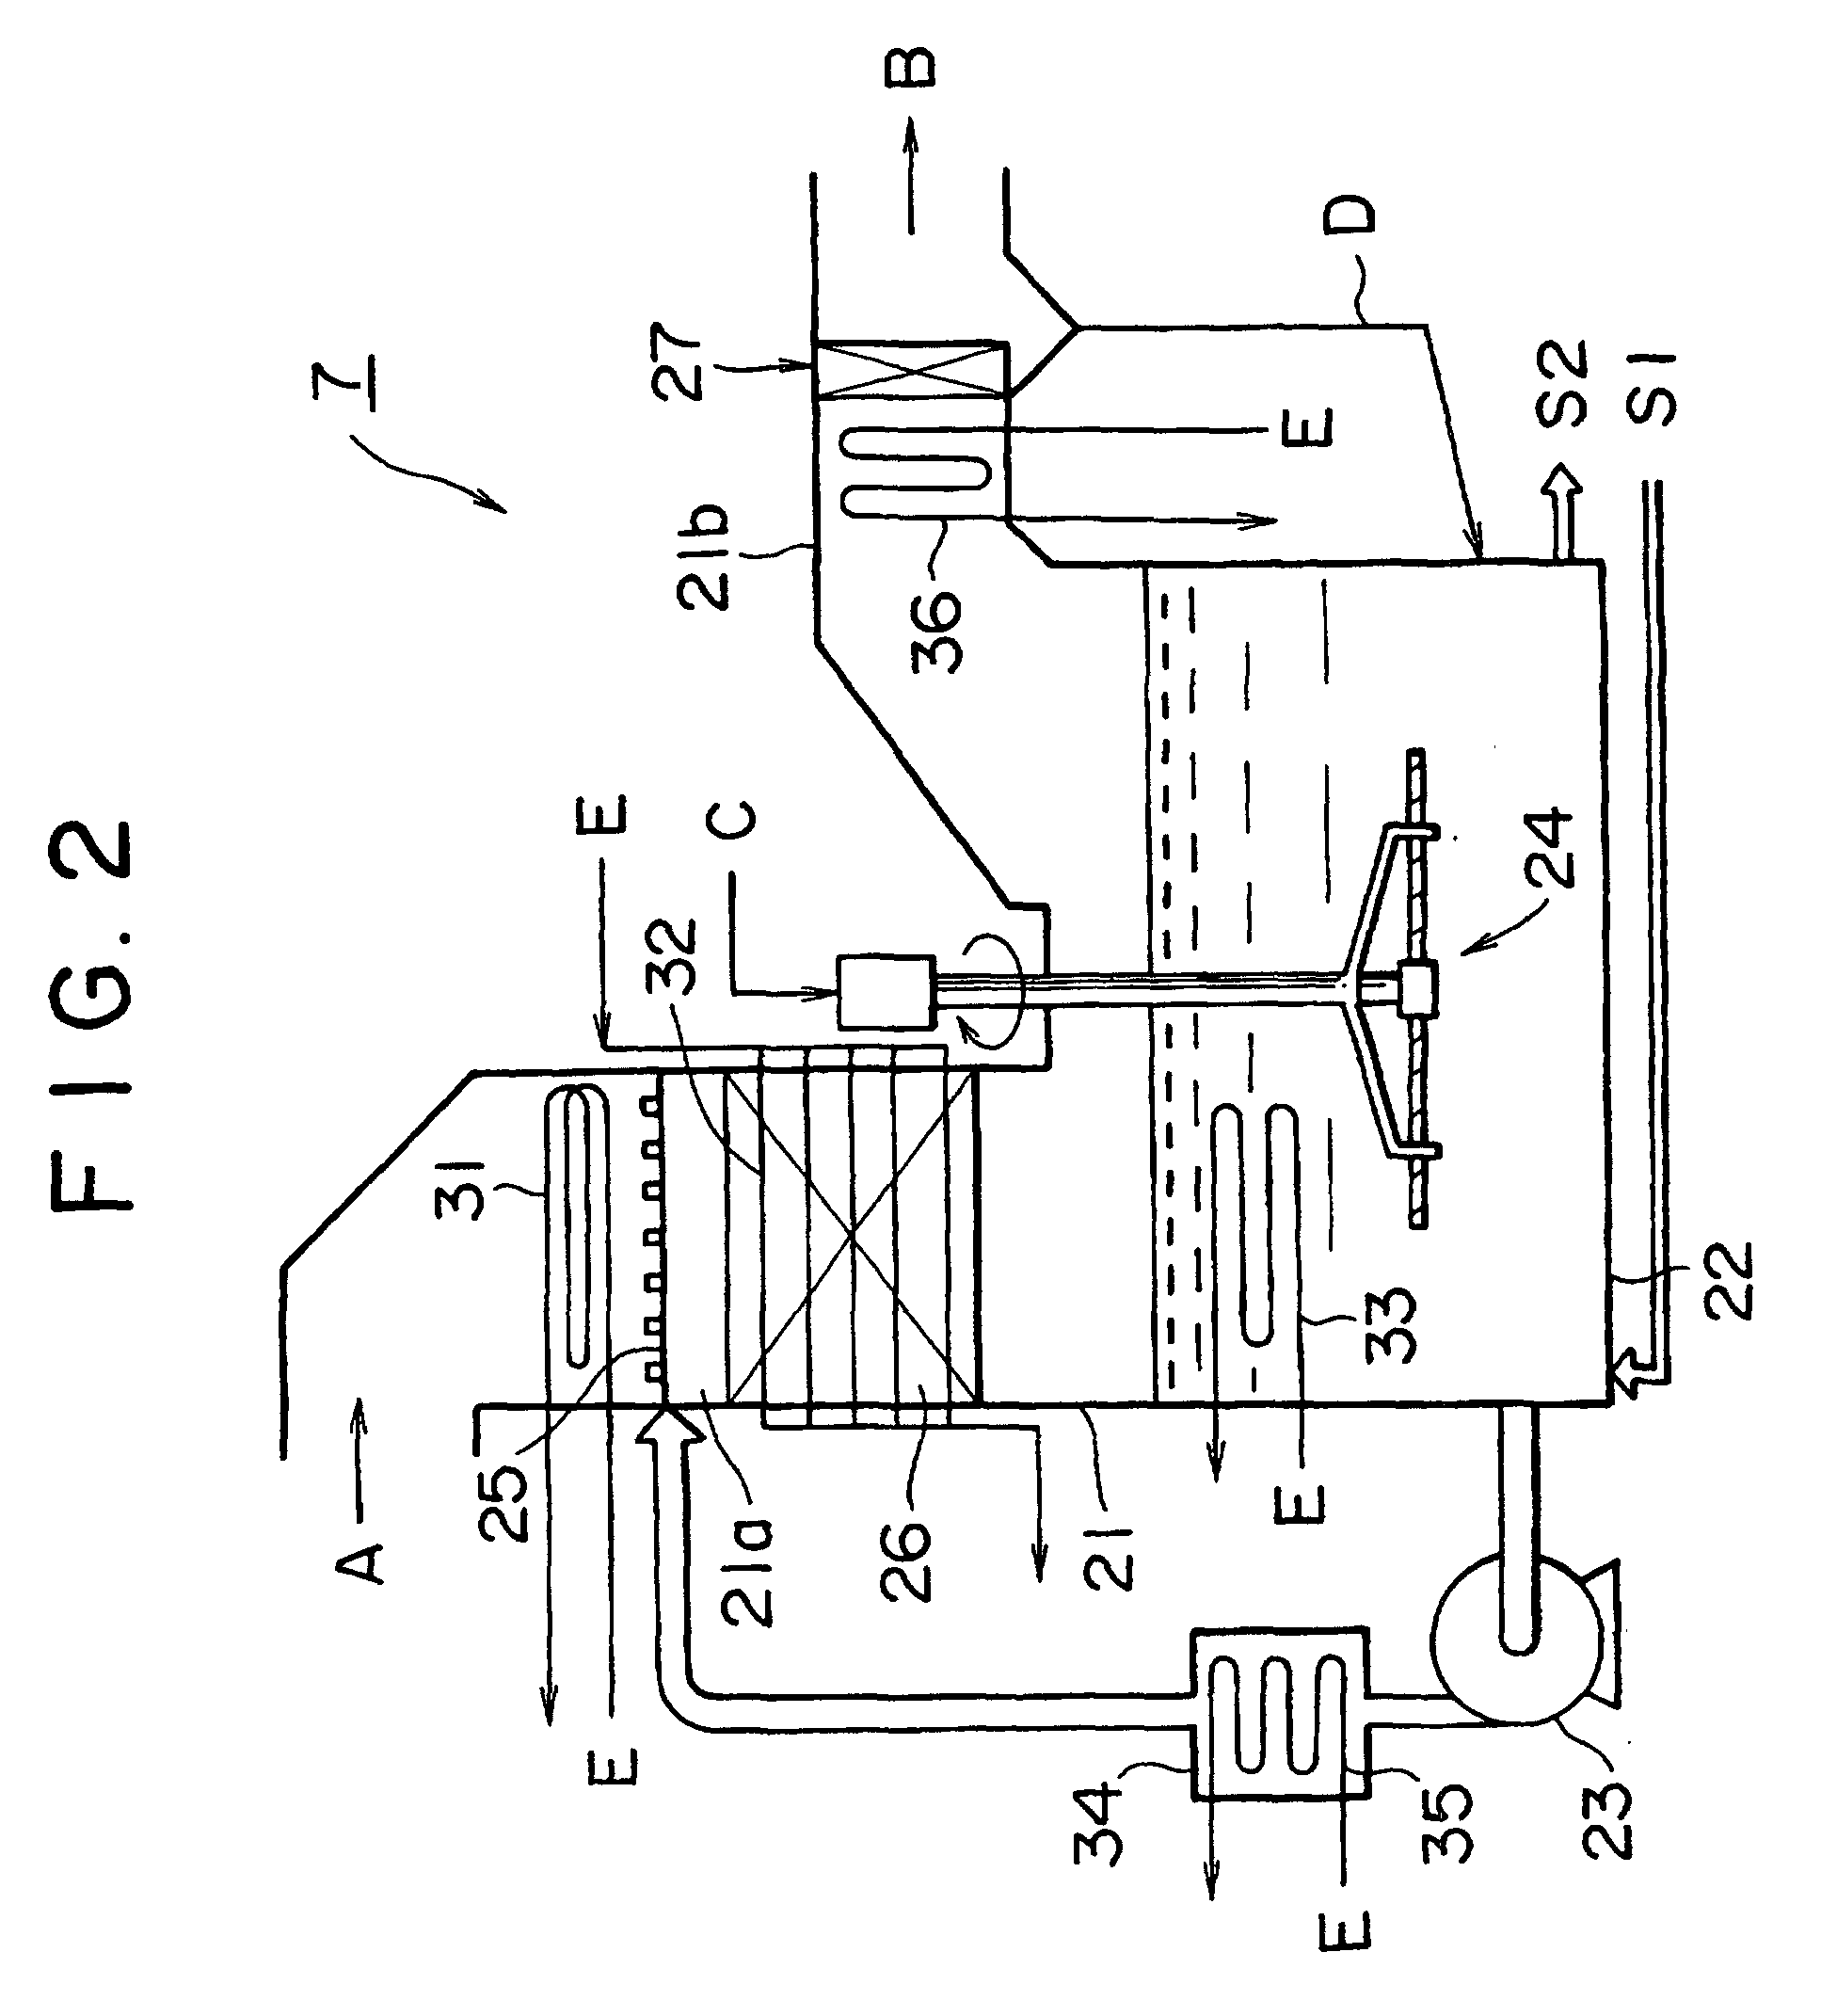 Patent EP B1 Boiler flue gas desulfuriser with heat